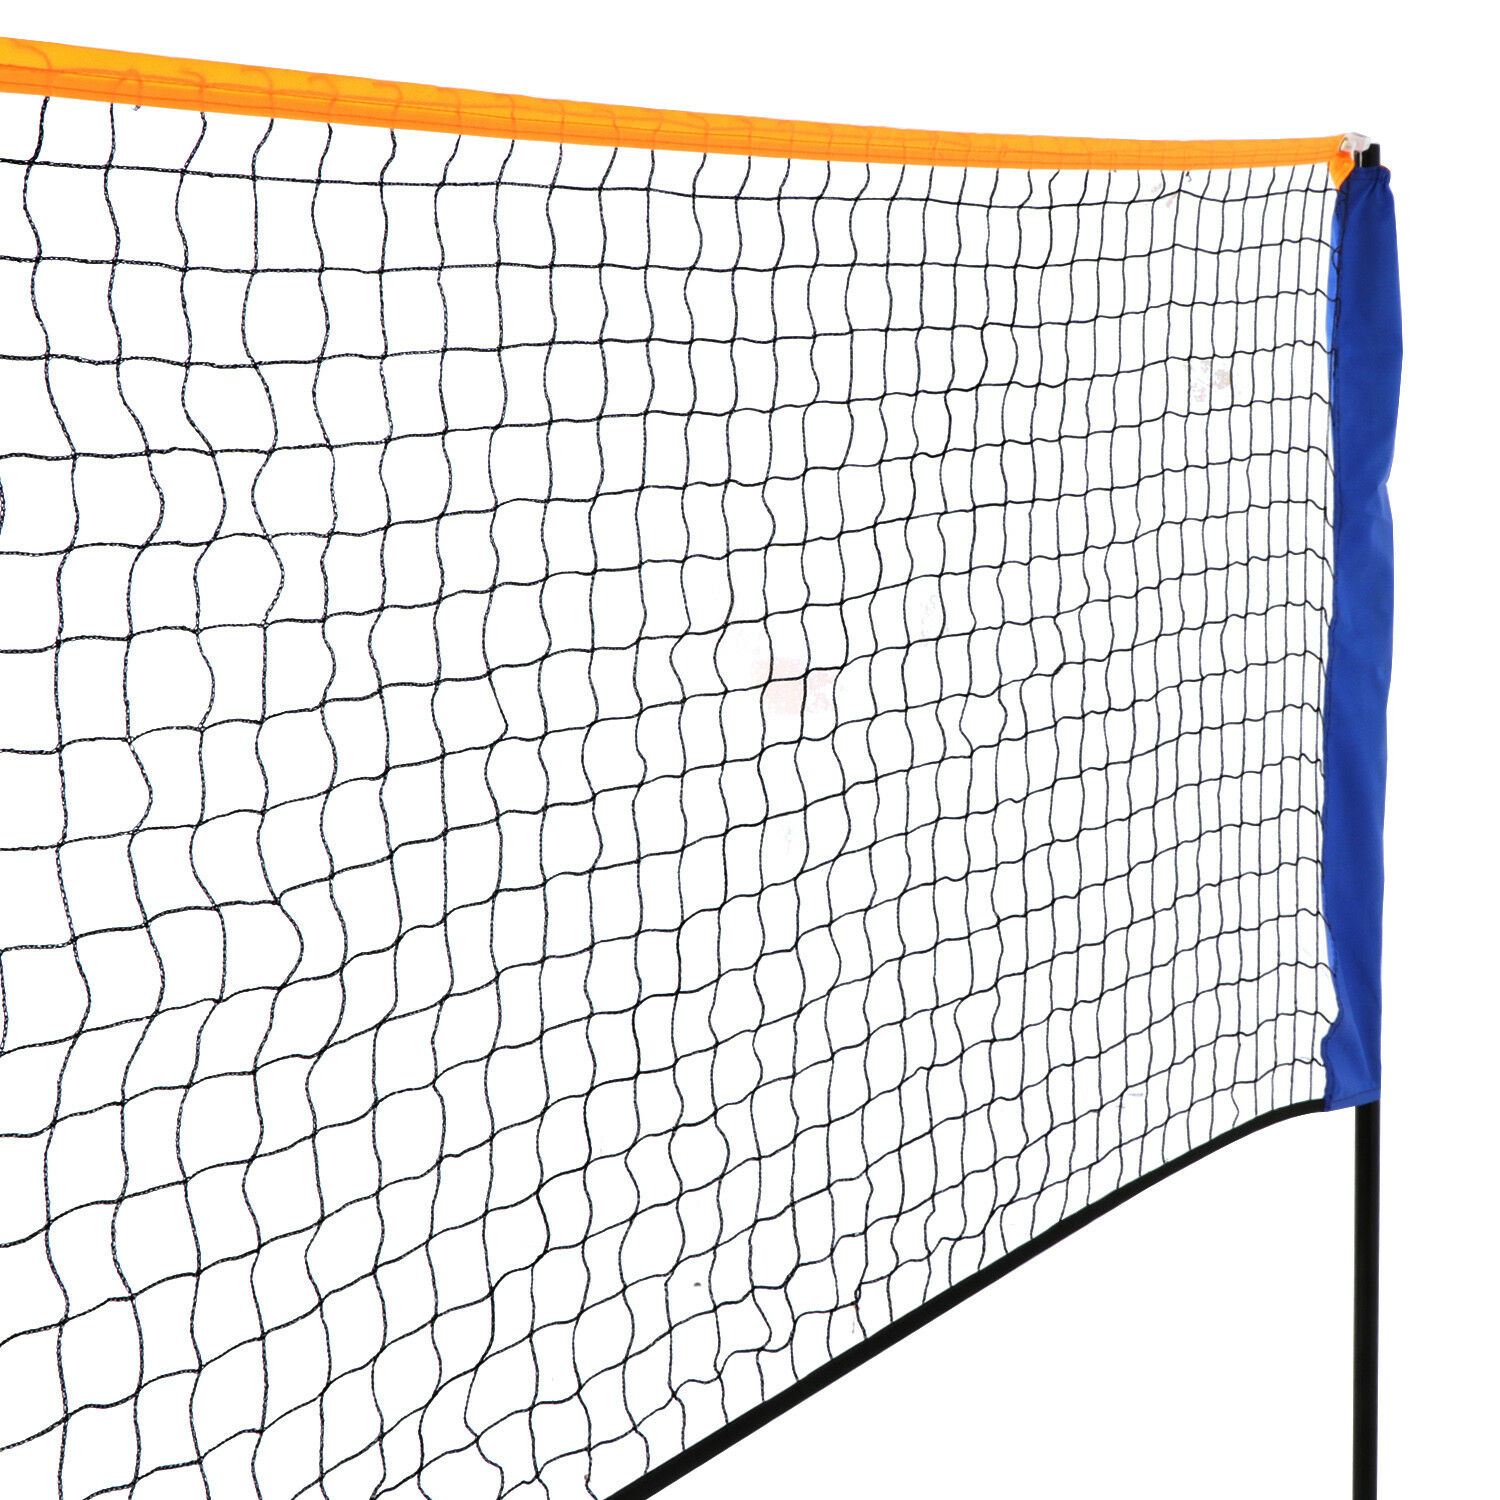 Hezhu 5m Adjustable Foldable Badminton Tennis Volleyball Net Outdoor Net Best Gift for Kids and Adults